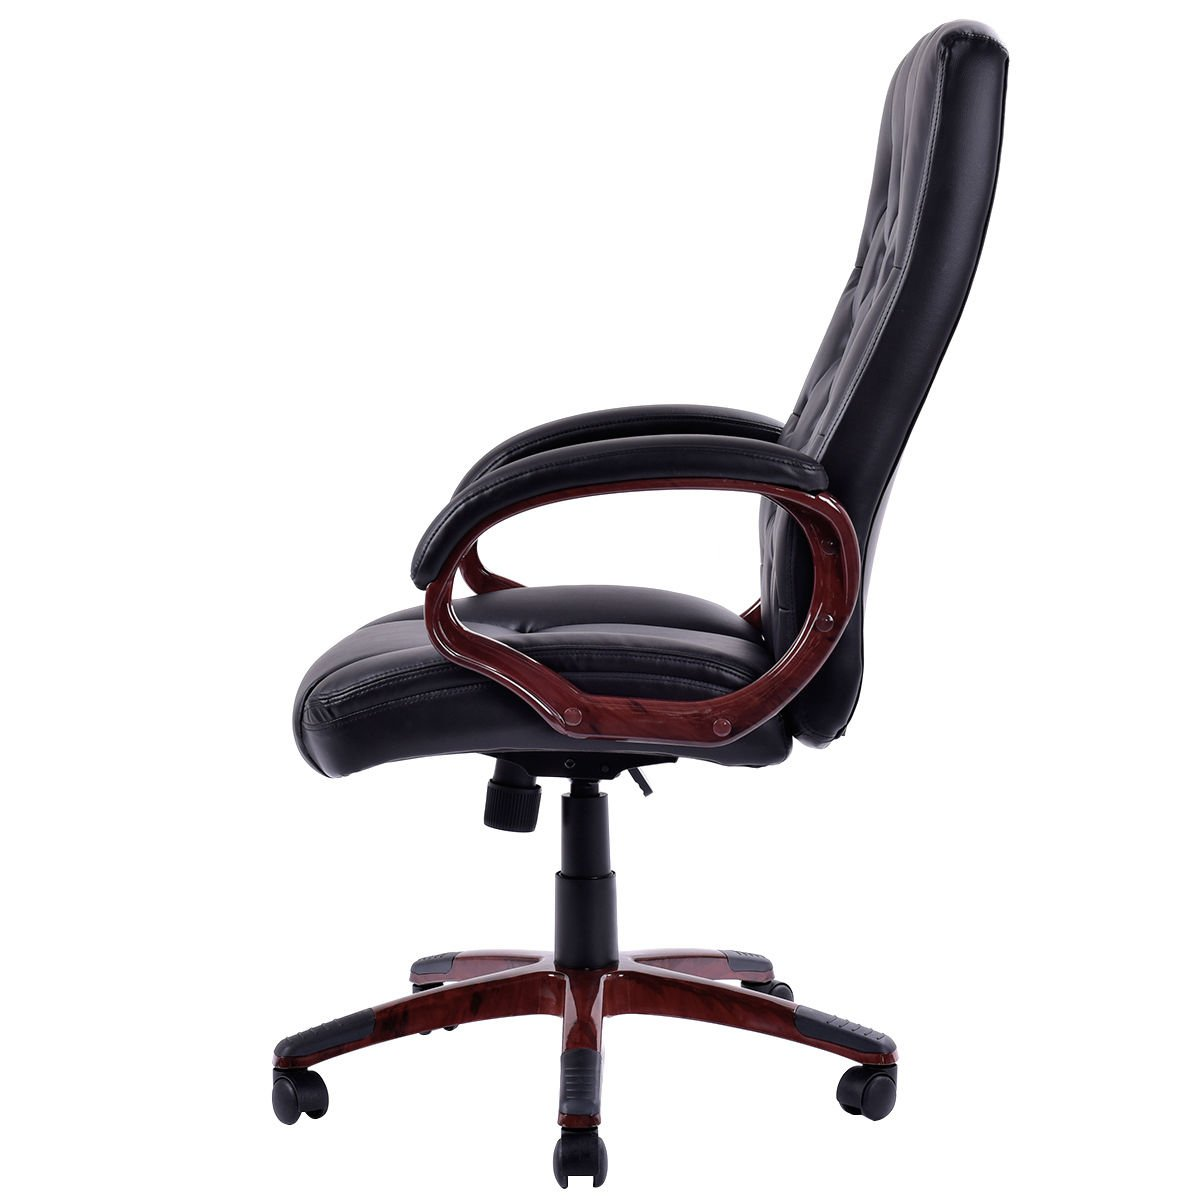 Giantex Ergonomic High Back Traditional Tufted Swivel Office Executive Chair, Black 2